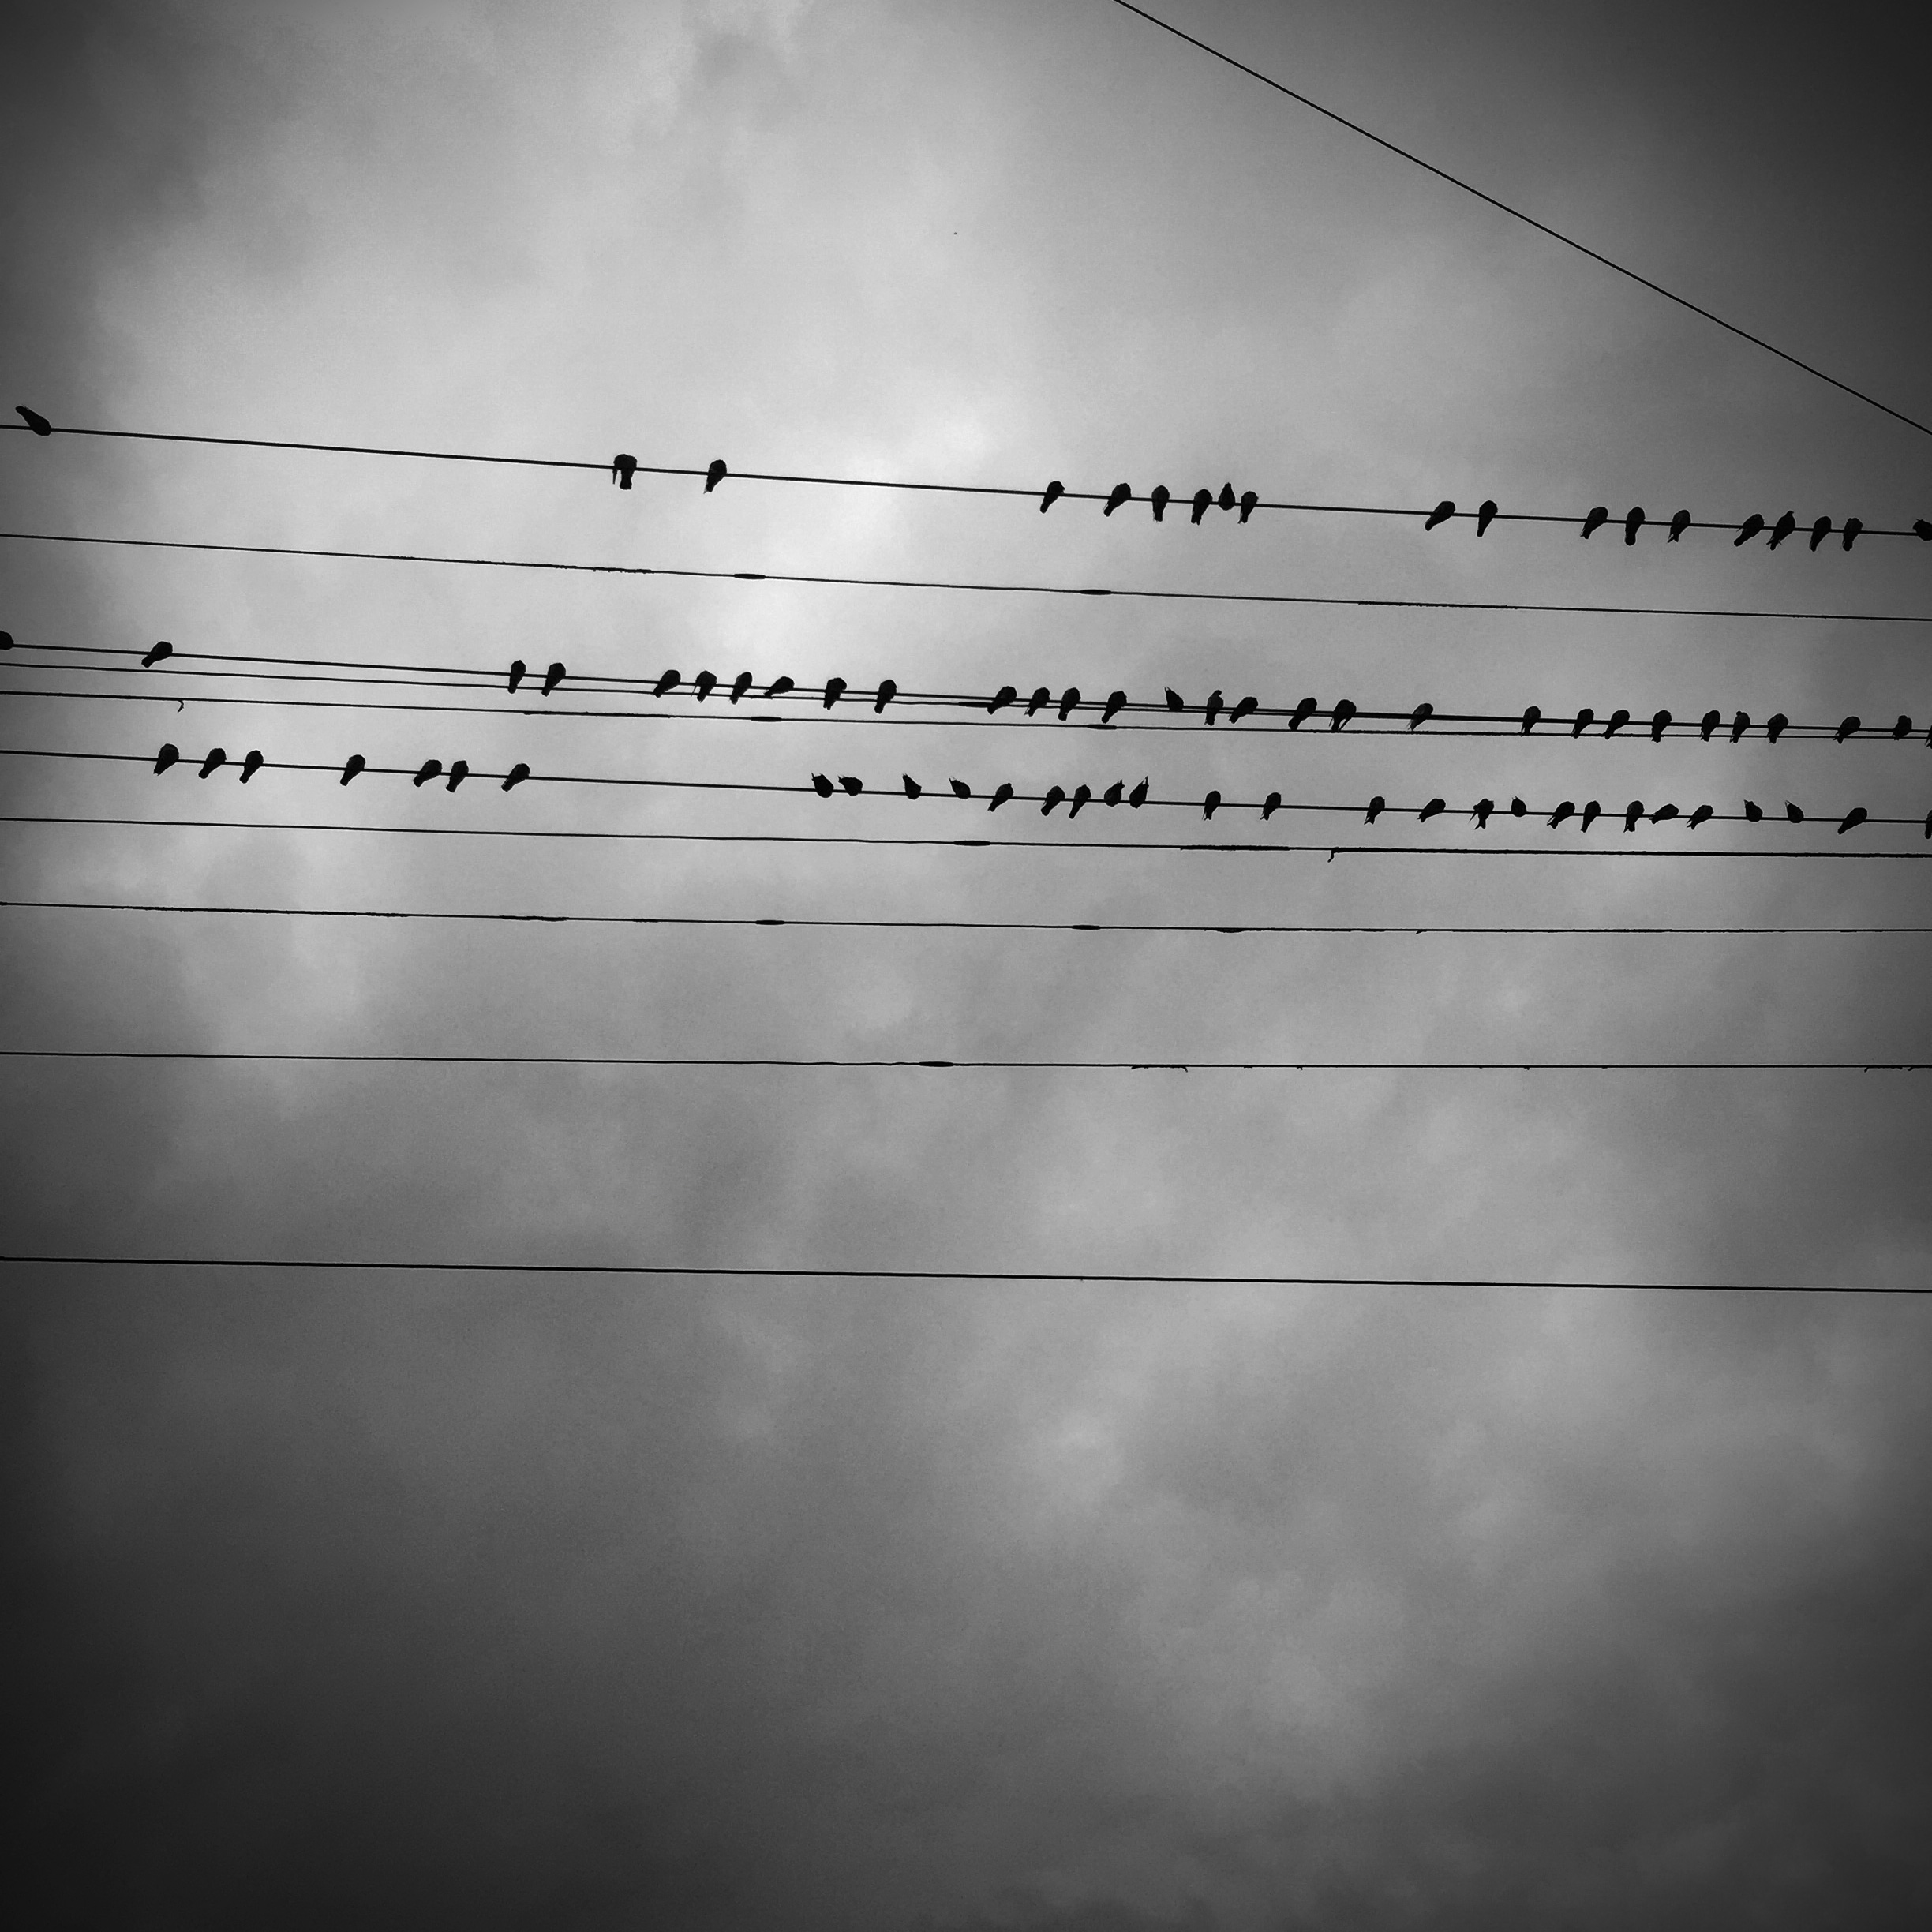 A photograph of some birds on a wire against a dramatic cloudy sky